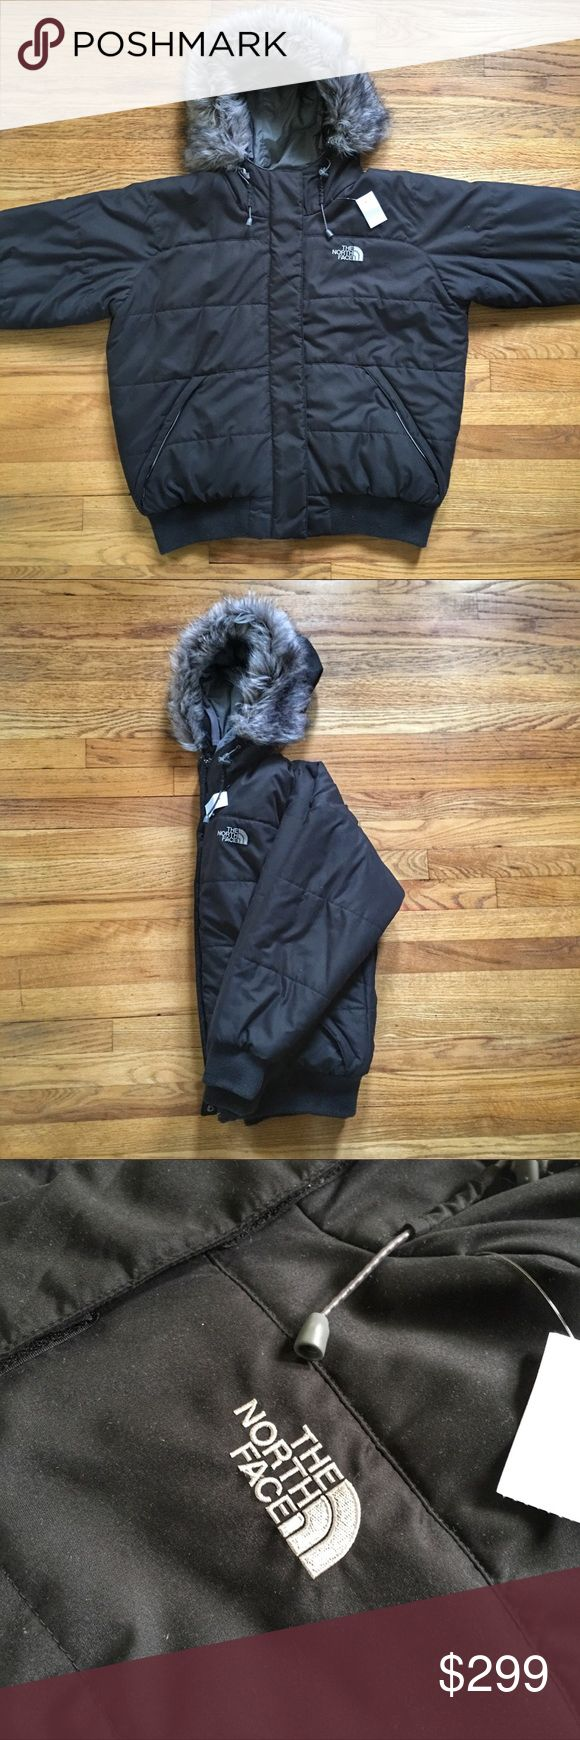 North Face Heavy Insulated Hooded Bomber Jacket North Face Heavy Insulated Hooded Bomber Jacket.  Pre-owned in excellent condition.  Size large.  Color is black.  Faux fur hood.  Retails $299 North Face Jackets & Coats